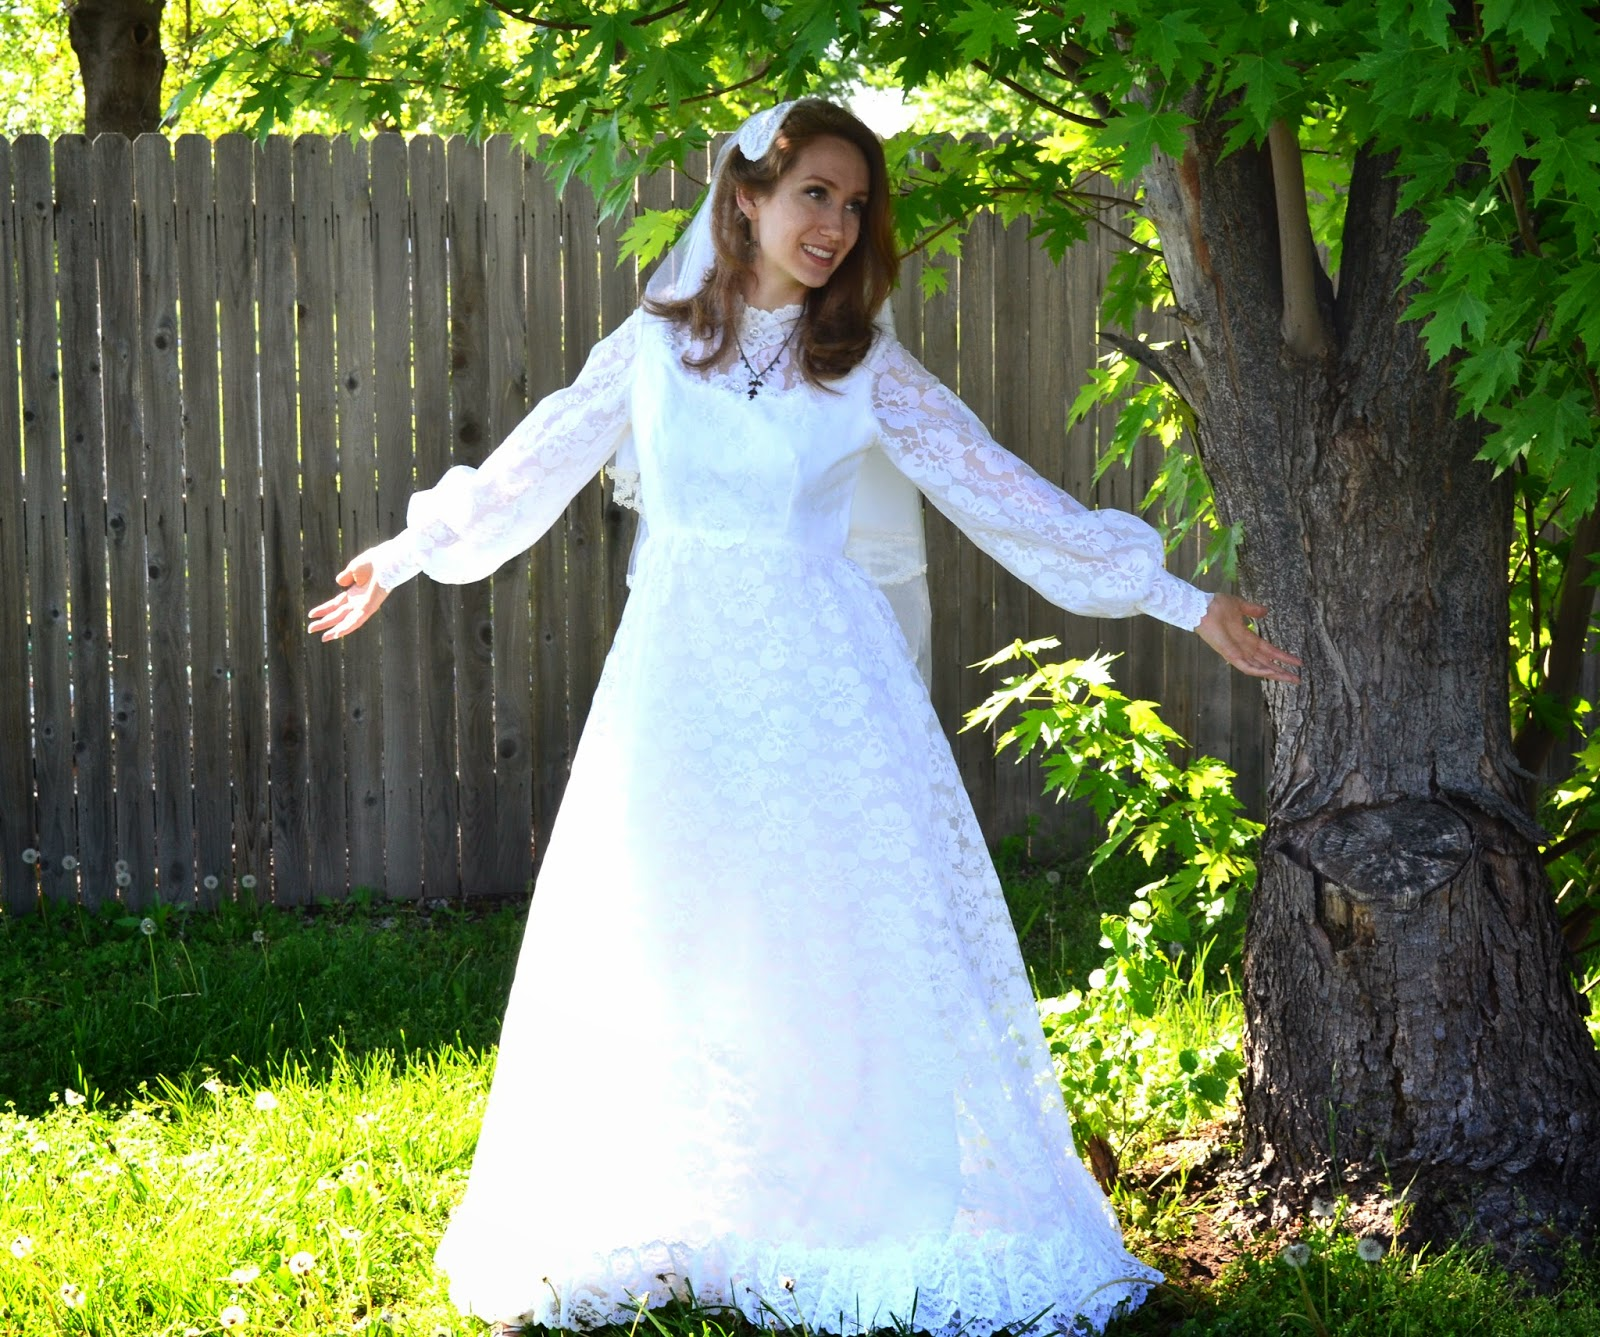 https://www.etsy.com/listing/187488913/floral-white-wedding-dress-1960s-empire?ref=shop_home_active_7&ga_search_query=wedding